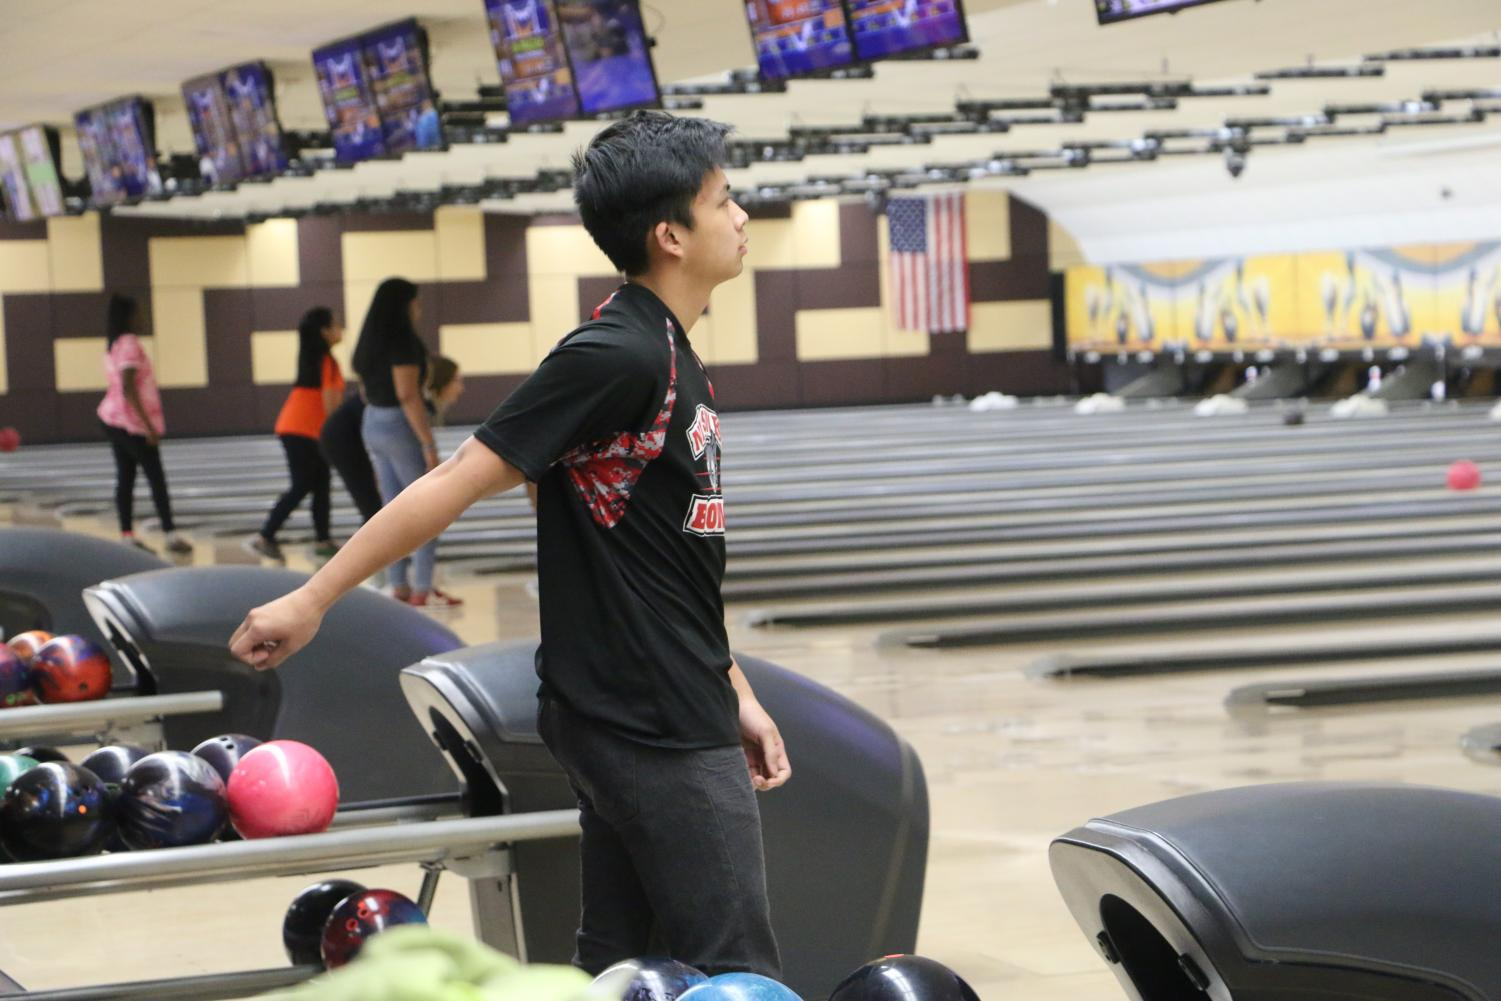 Player+for+the+Niles+West+bowling+team+glancing+a+the+score+board.+